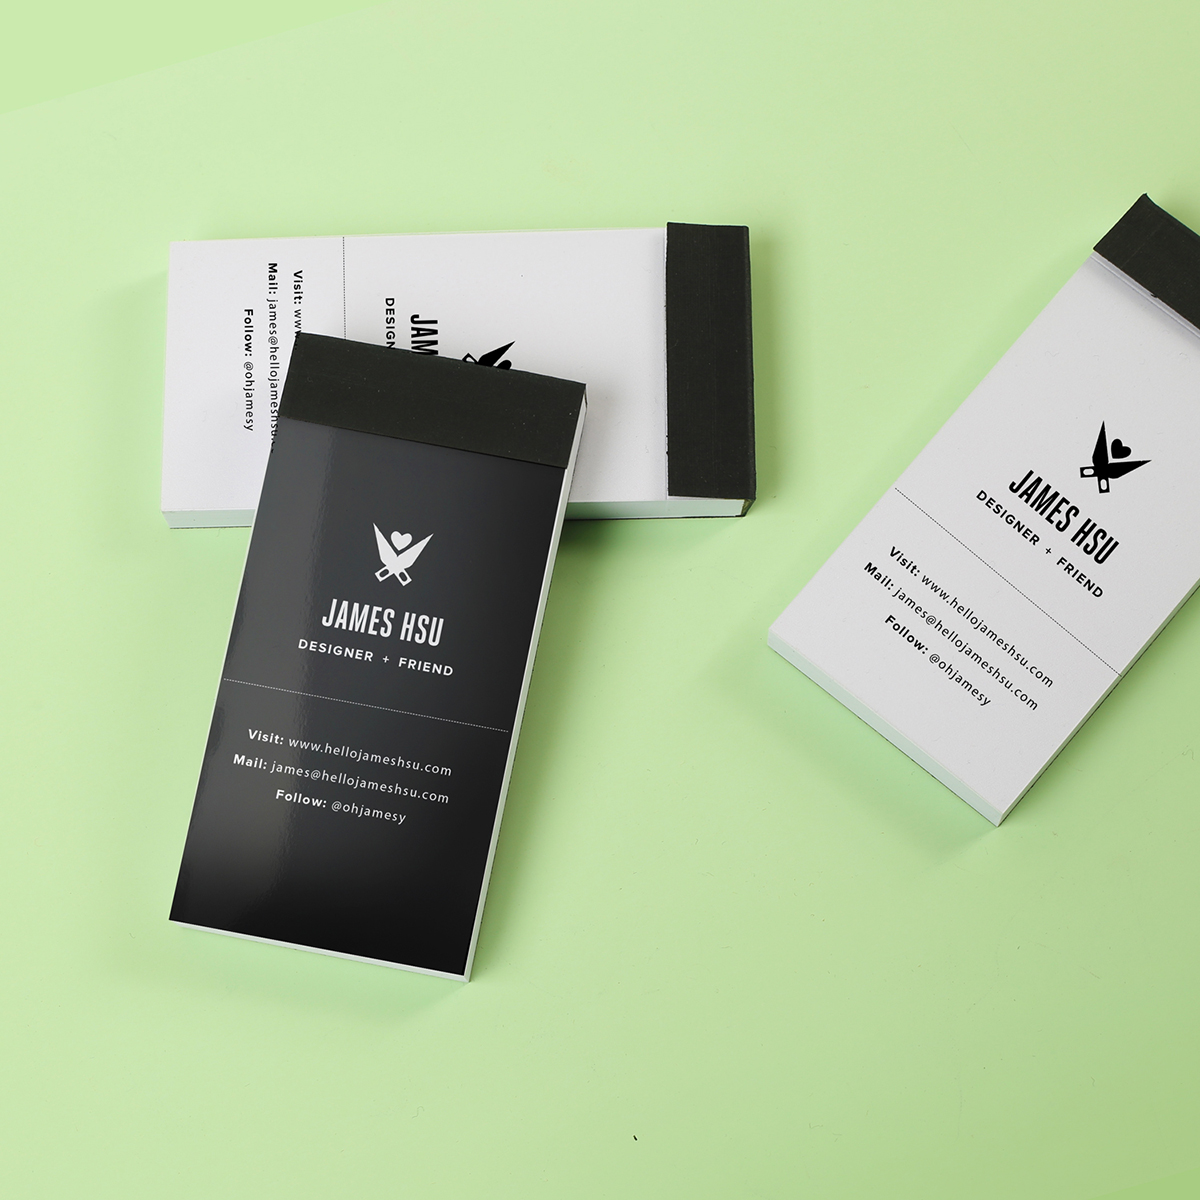 Avery Business Card Books are custom business cards bound in a clear cover keeping them free of bends, creases and dirt.